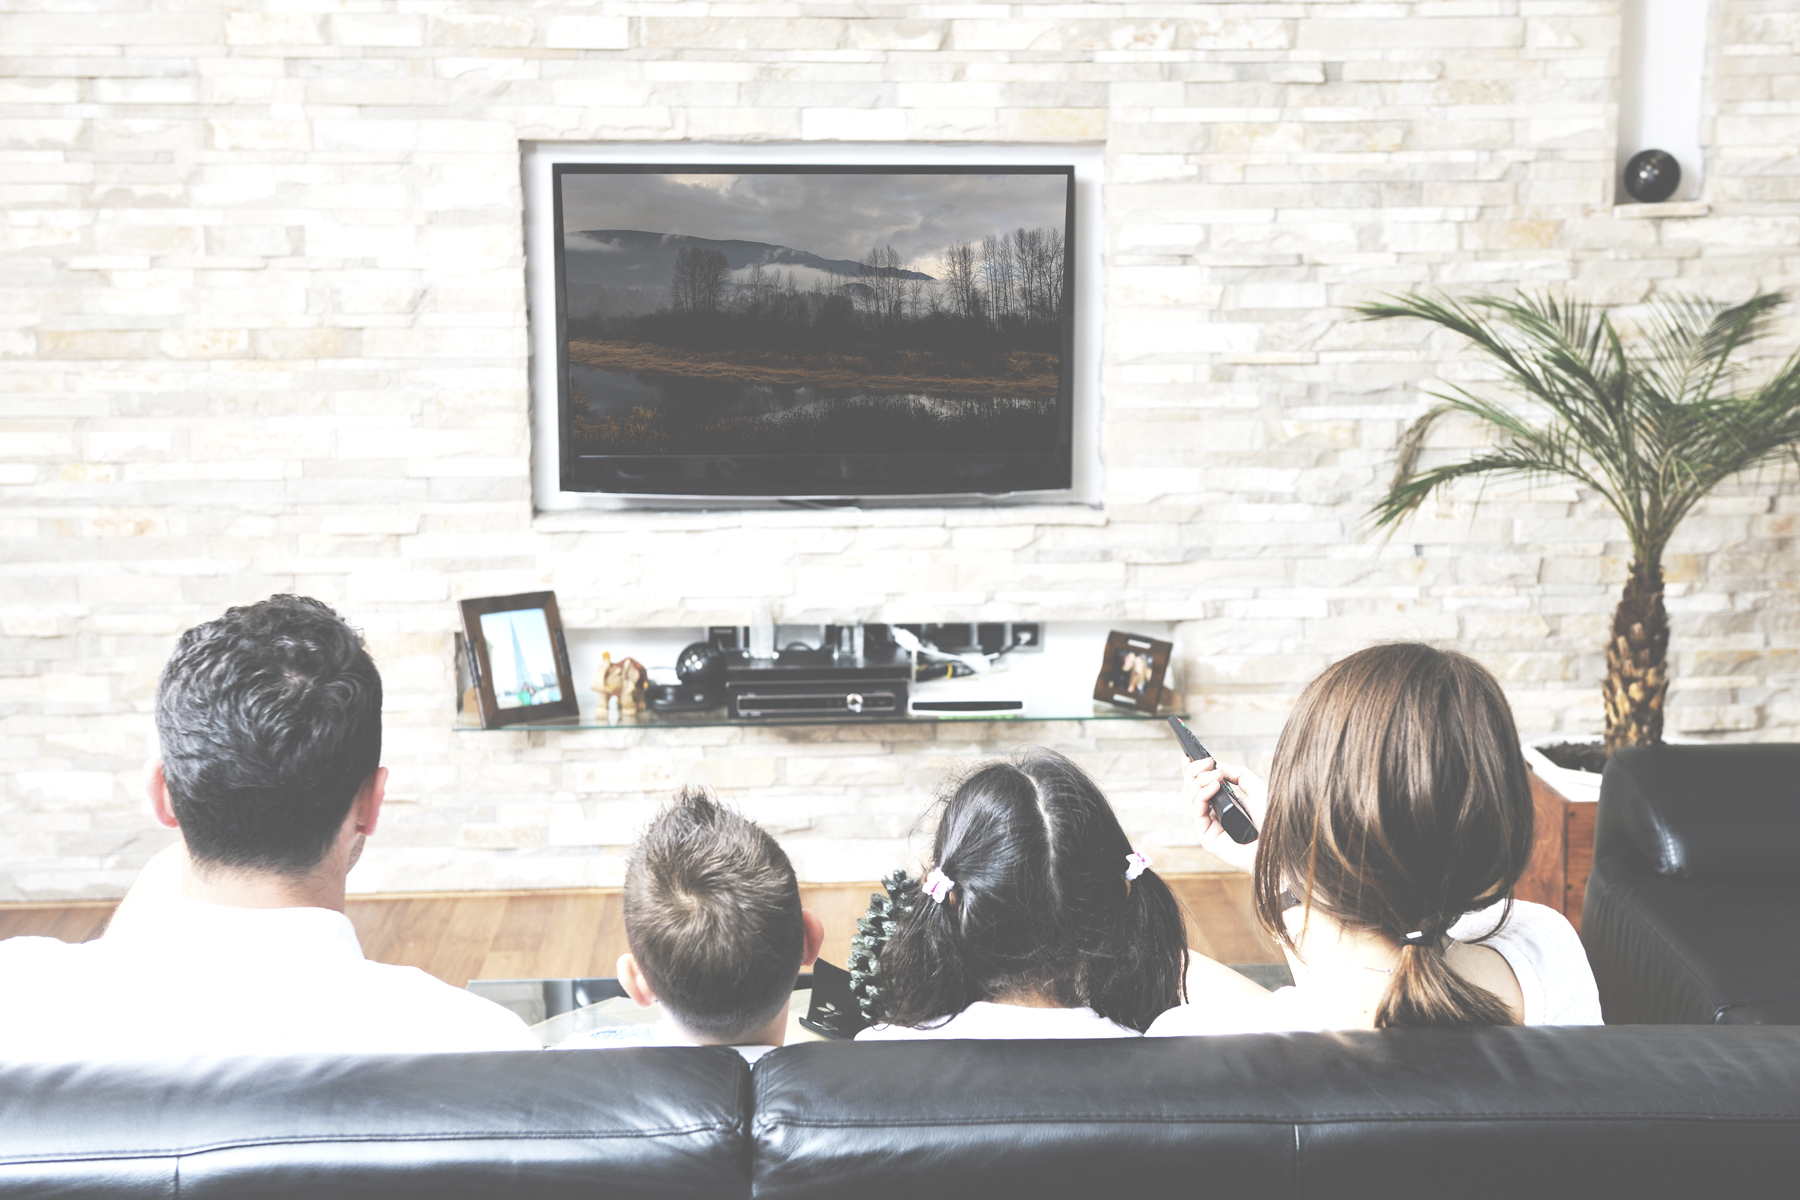 Family of four watching a movie on TV in their living room